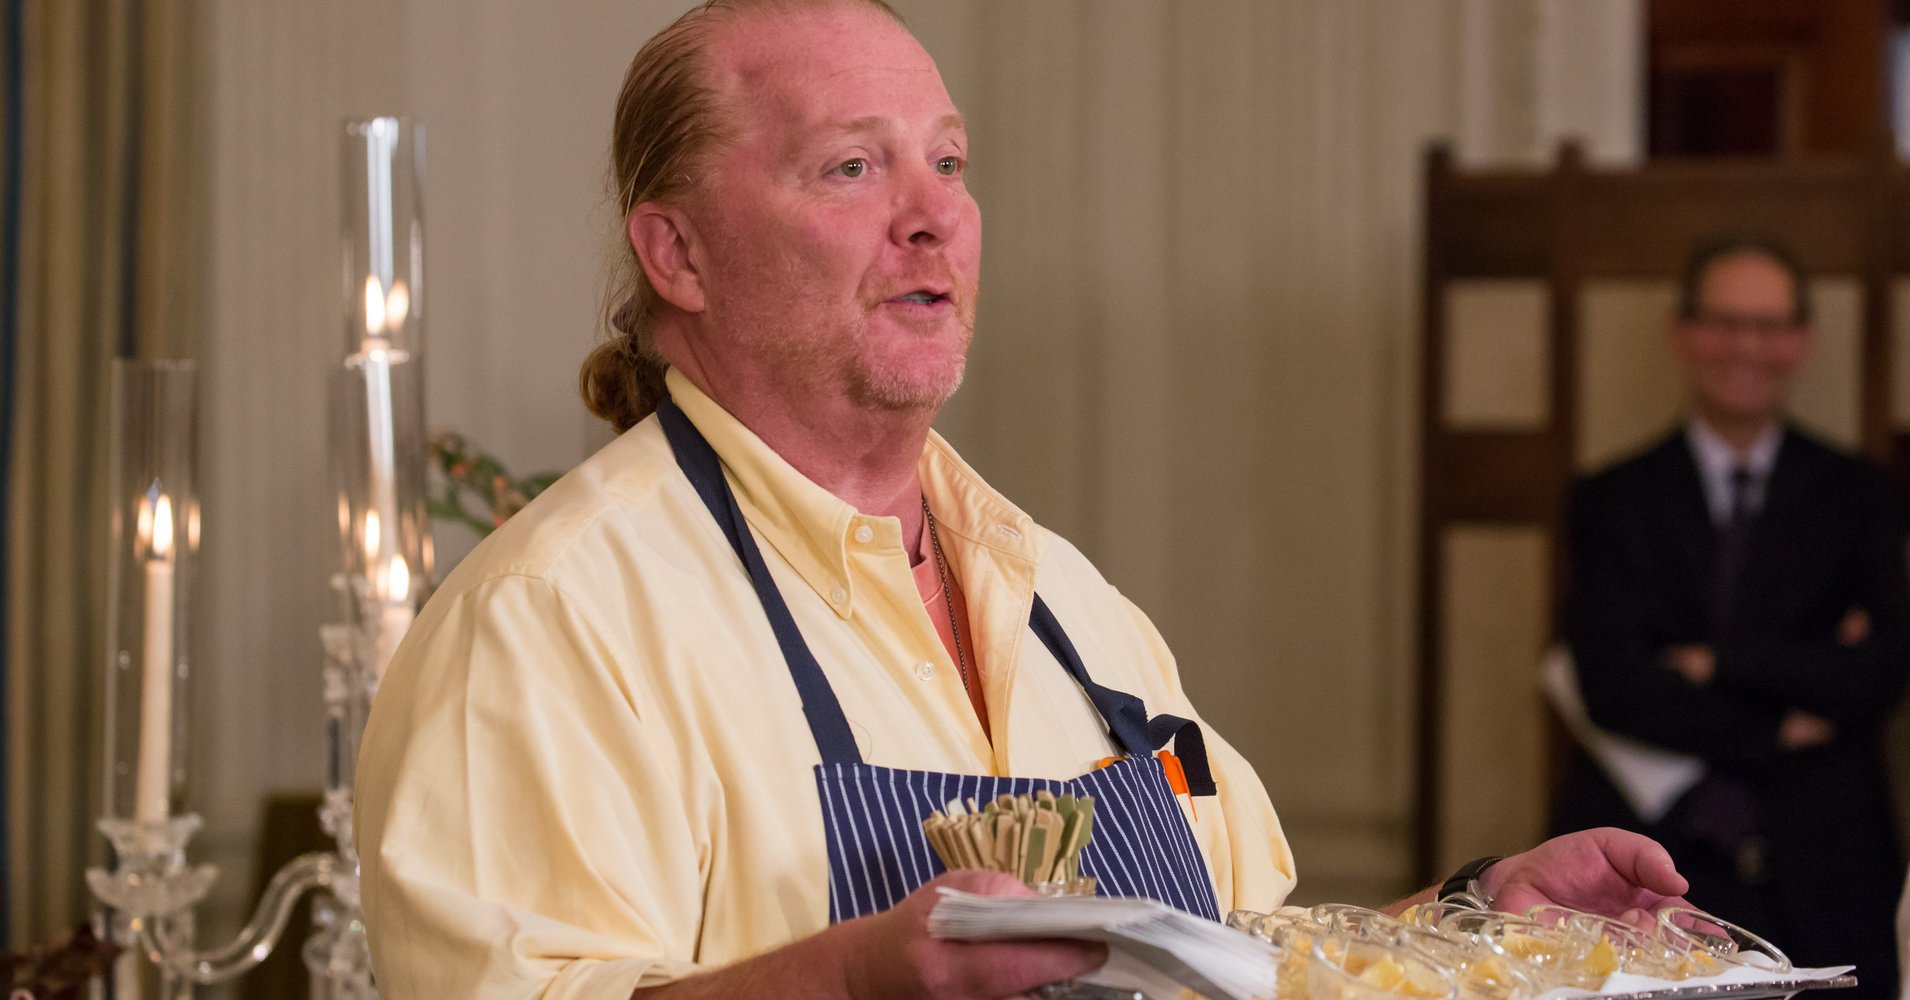 Chef Mario Batali takes leave after 4 women accuse him of sexual misconduct https://t.co/5nsdnNWt1S https://t.co/lTPoahjVPc